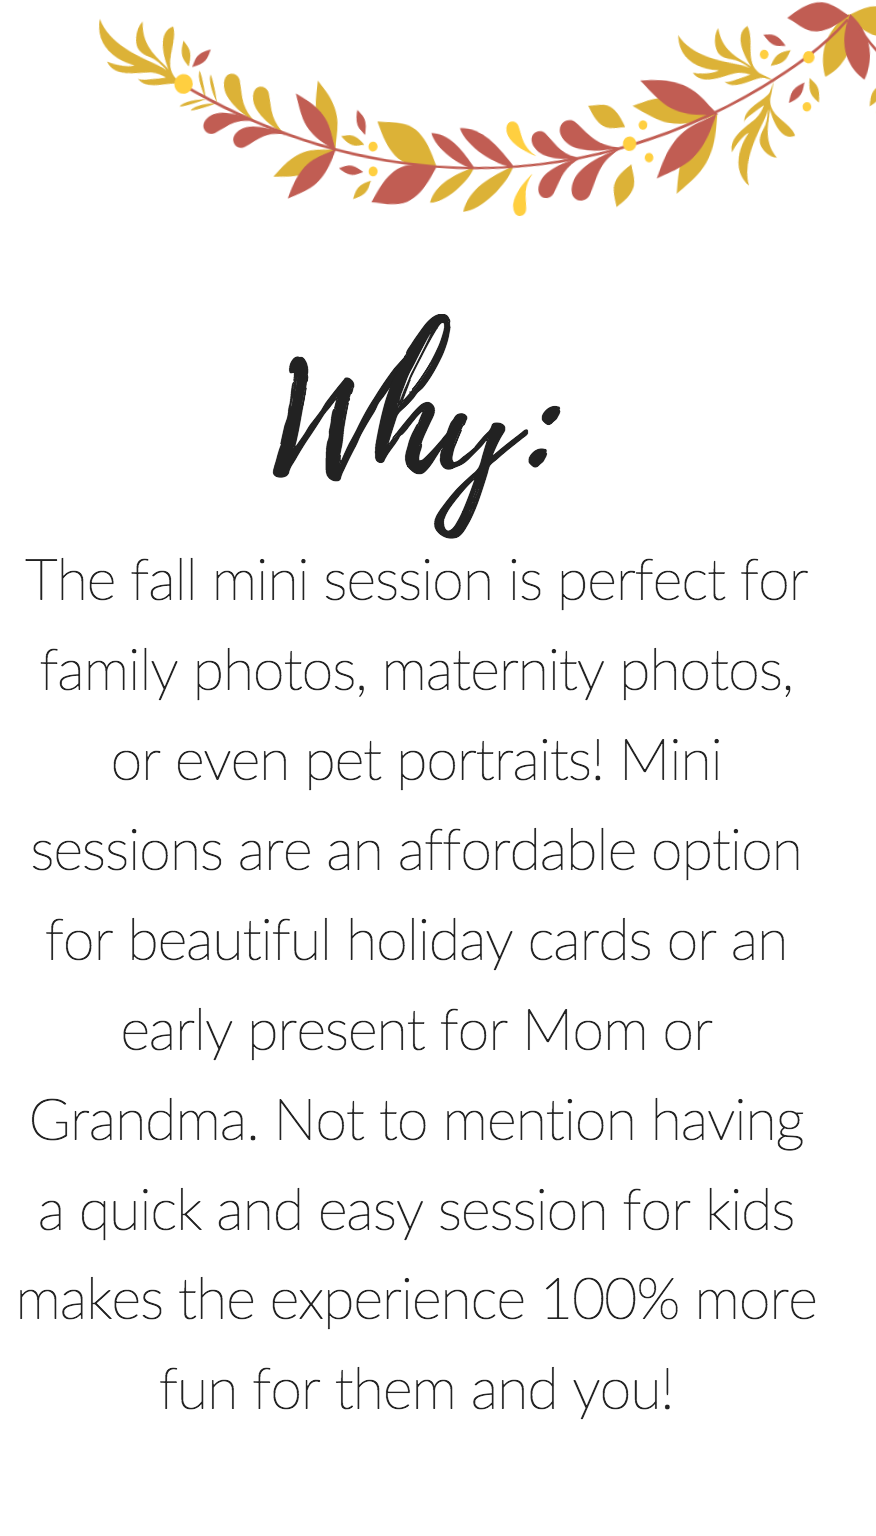 A mini session is great for holiday card portraits, an early present, or just for fun